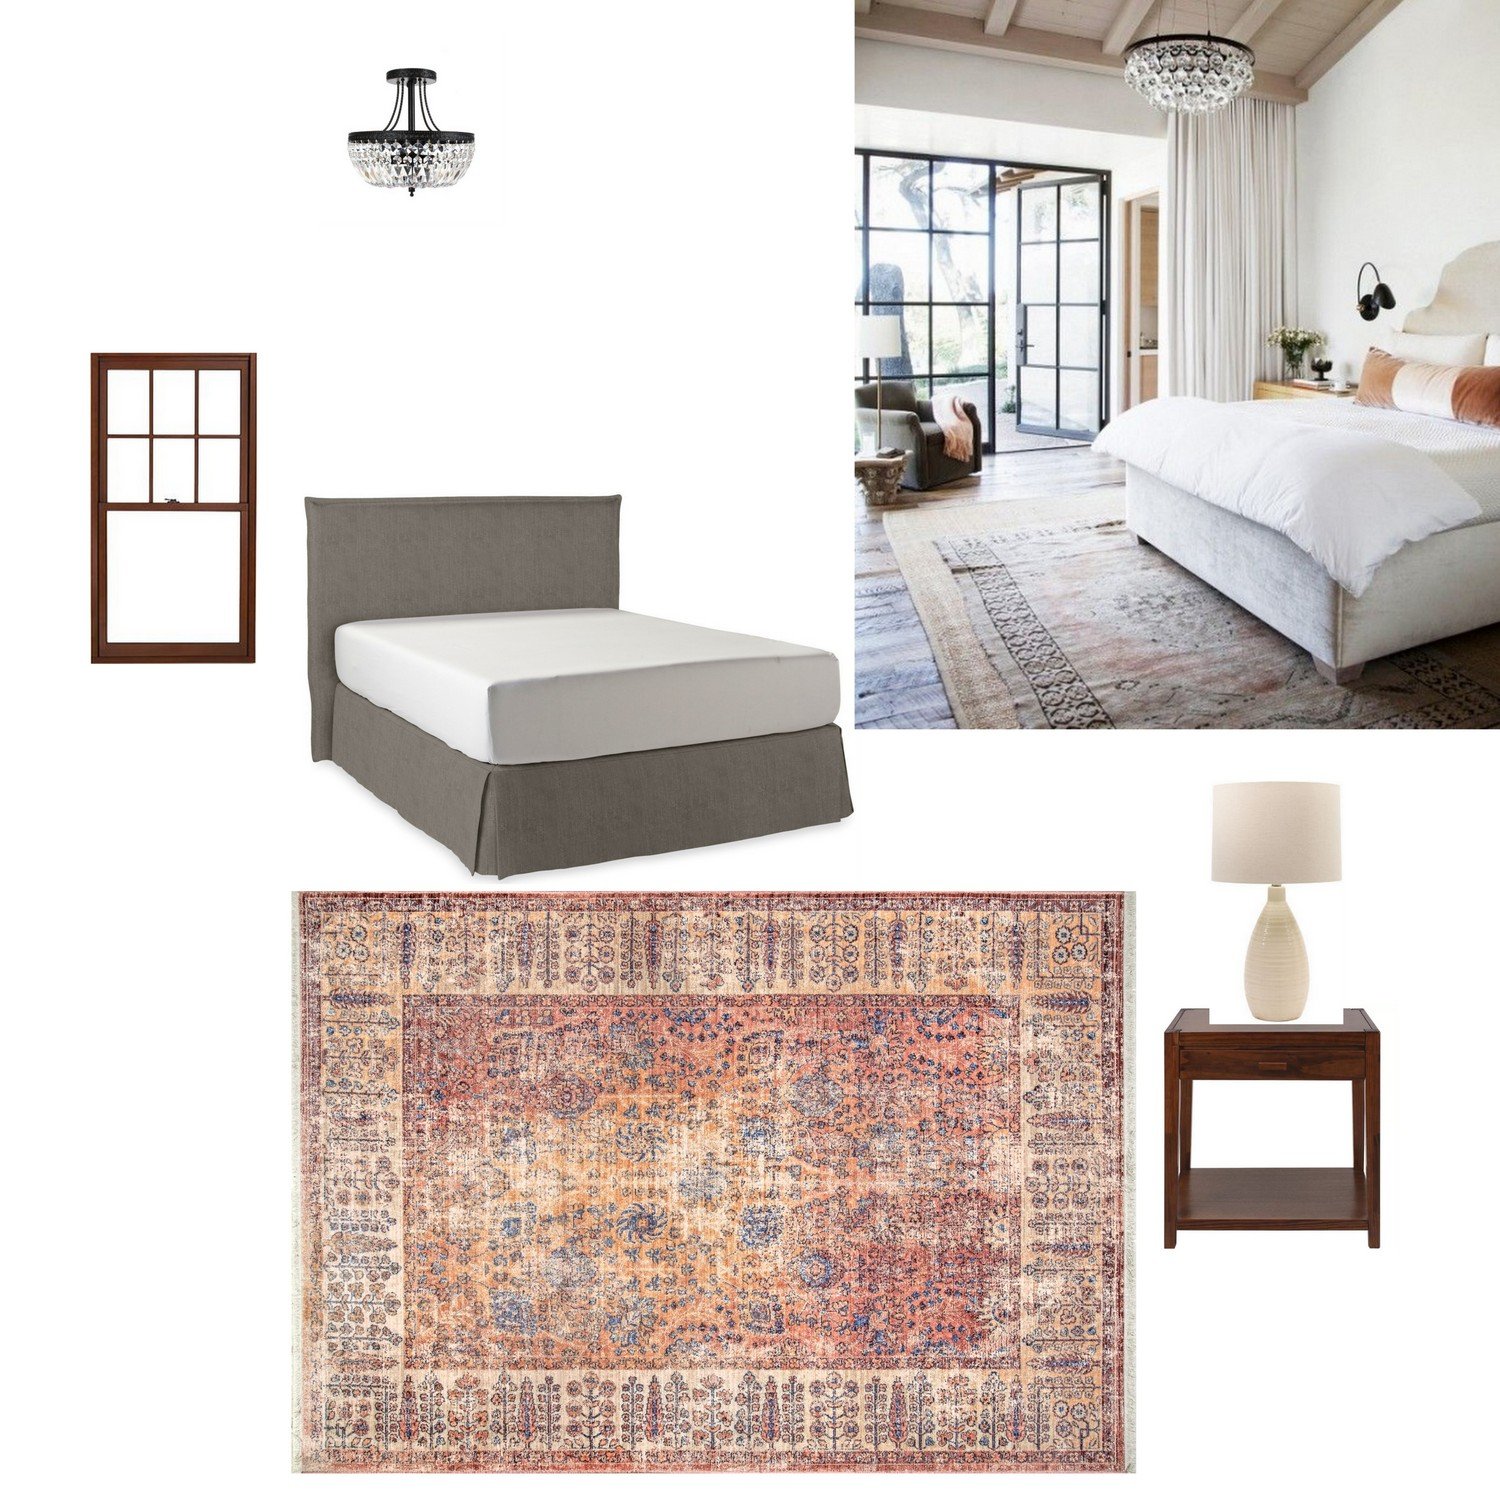 Master bedroom makeover before, inspiration, and plan: Week 1 of the ...